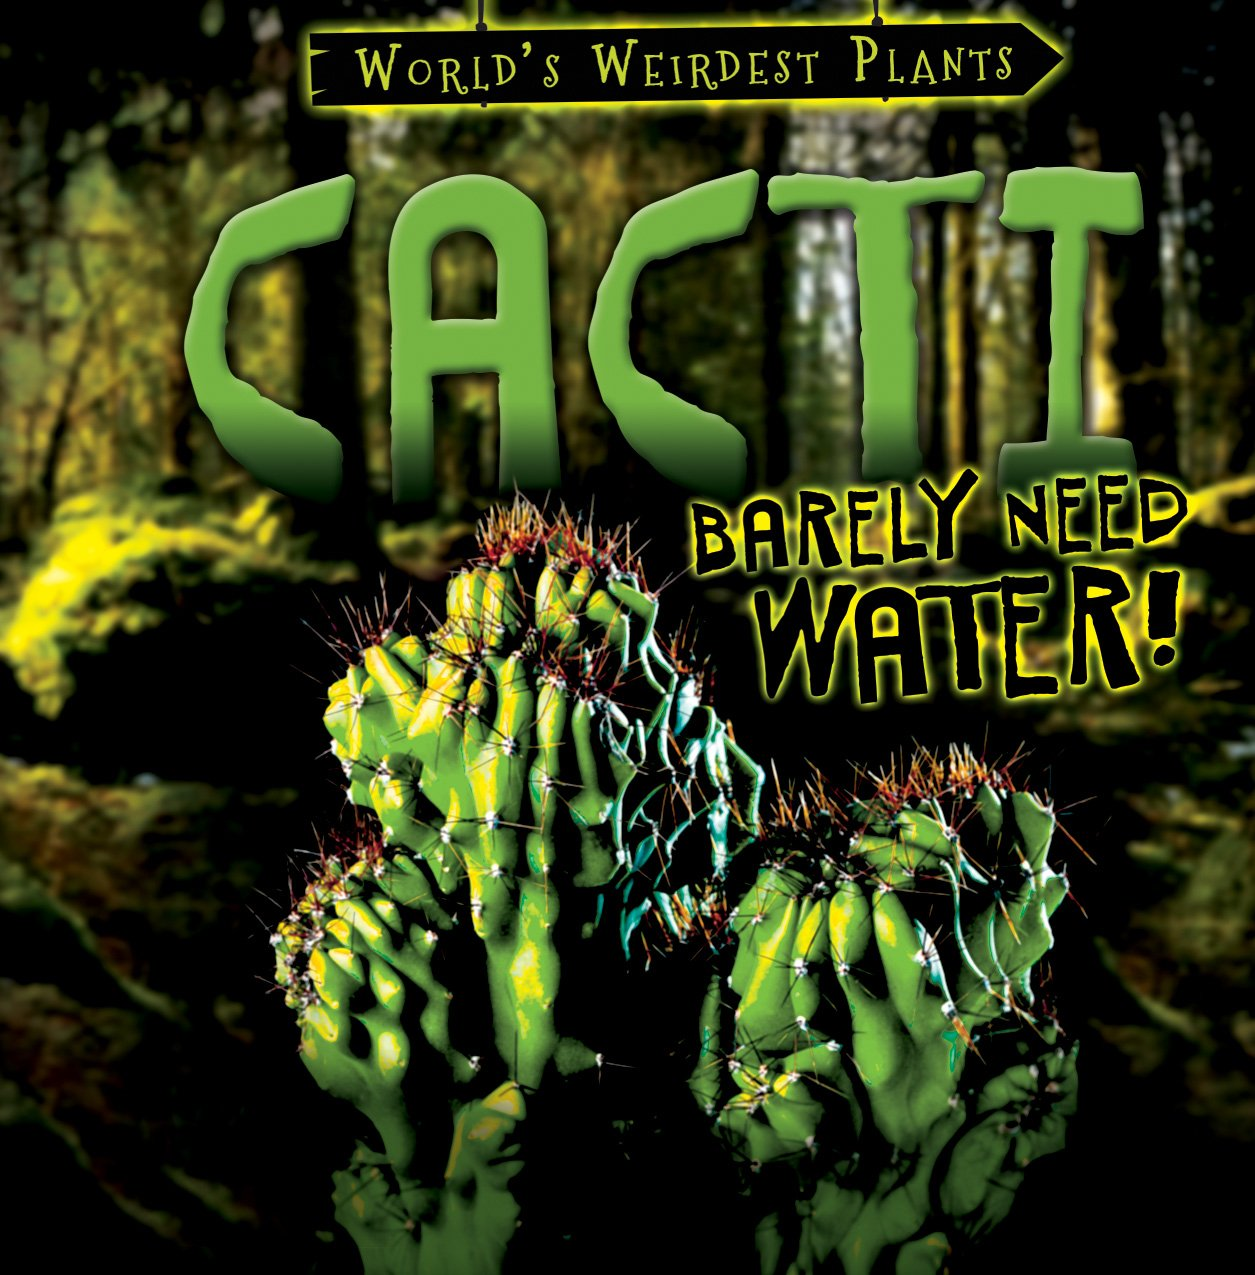 Cacti Barely Need Water! (World's Weirdest Plants)